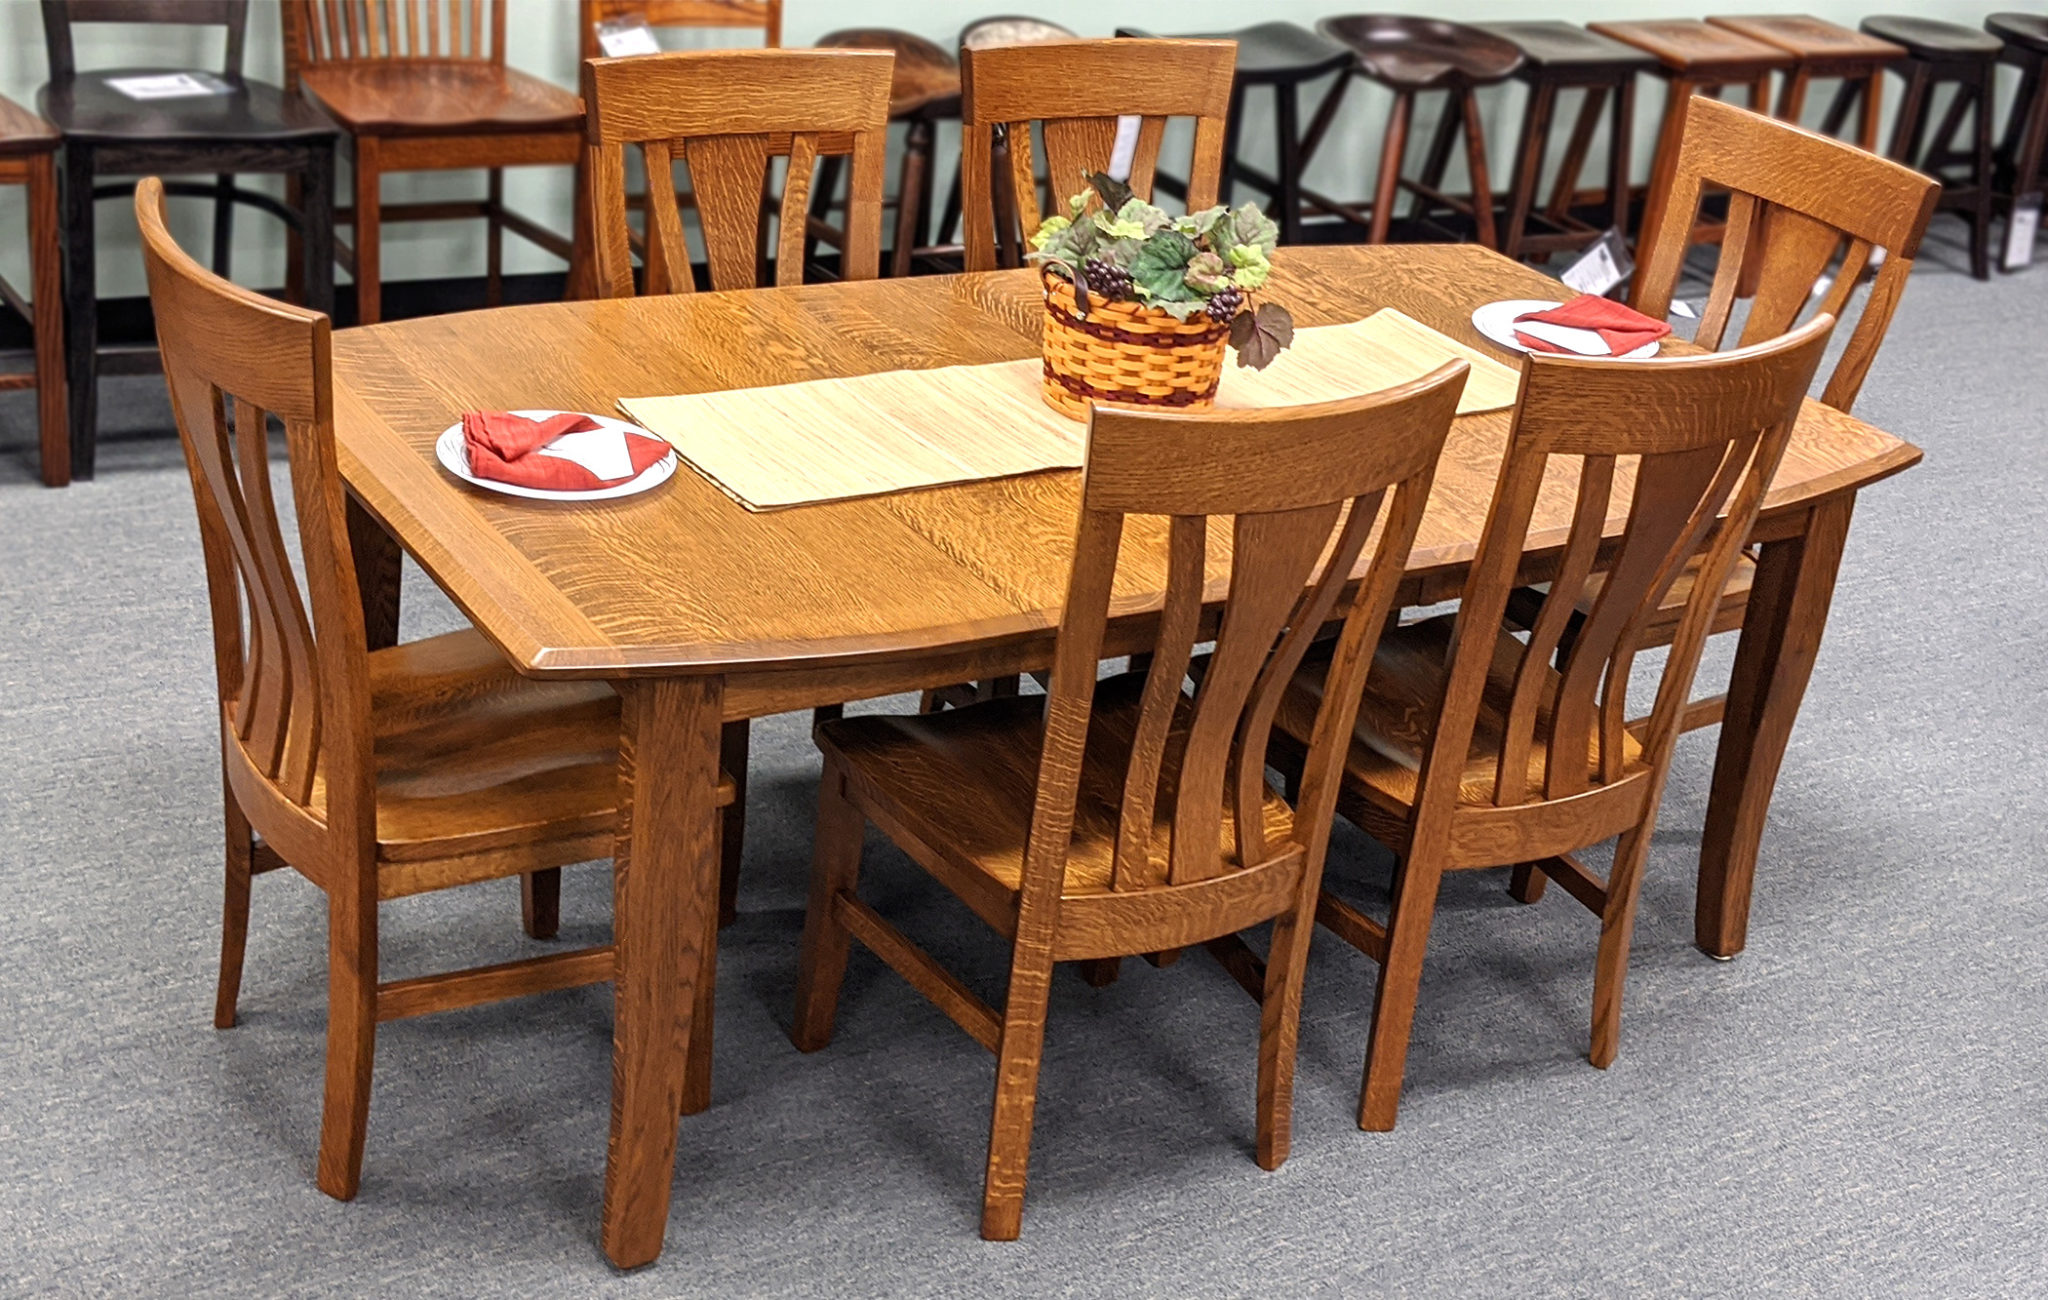 3in Shaker Leg Table With Bow Top 2100 X 1333